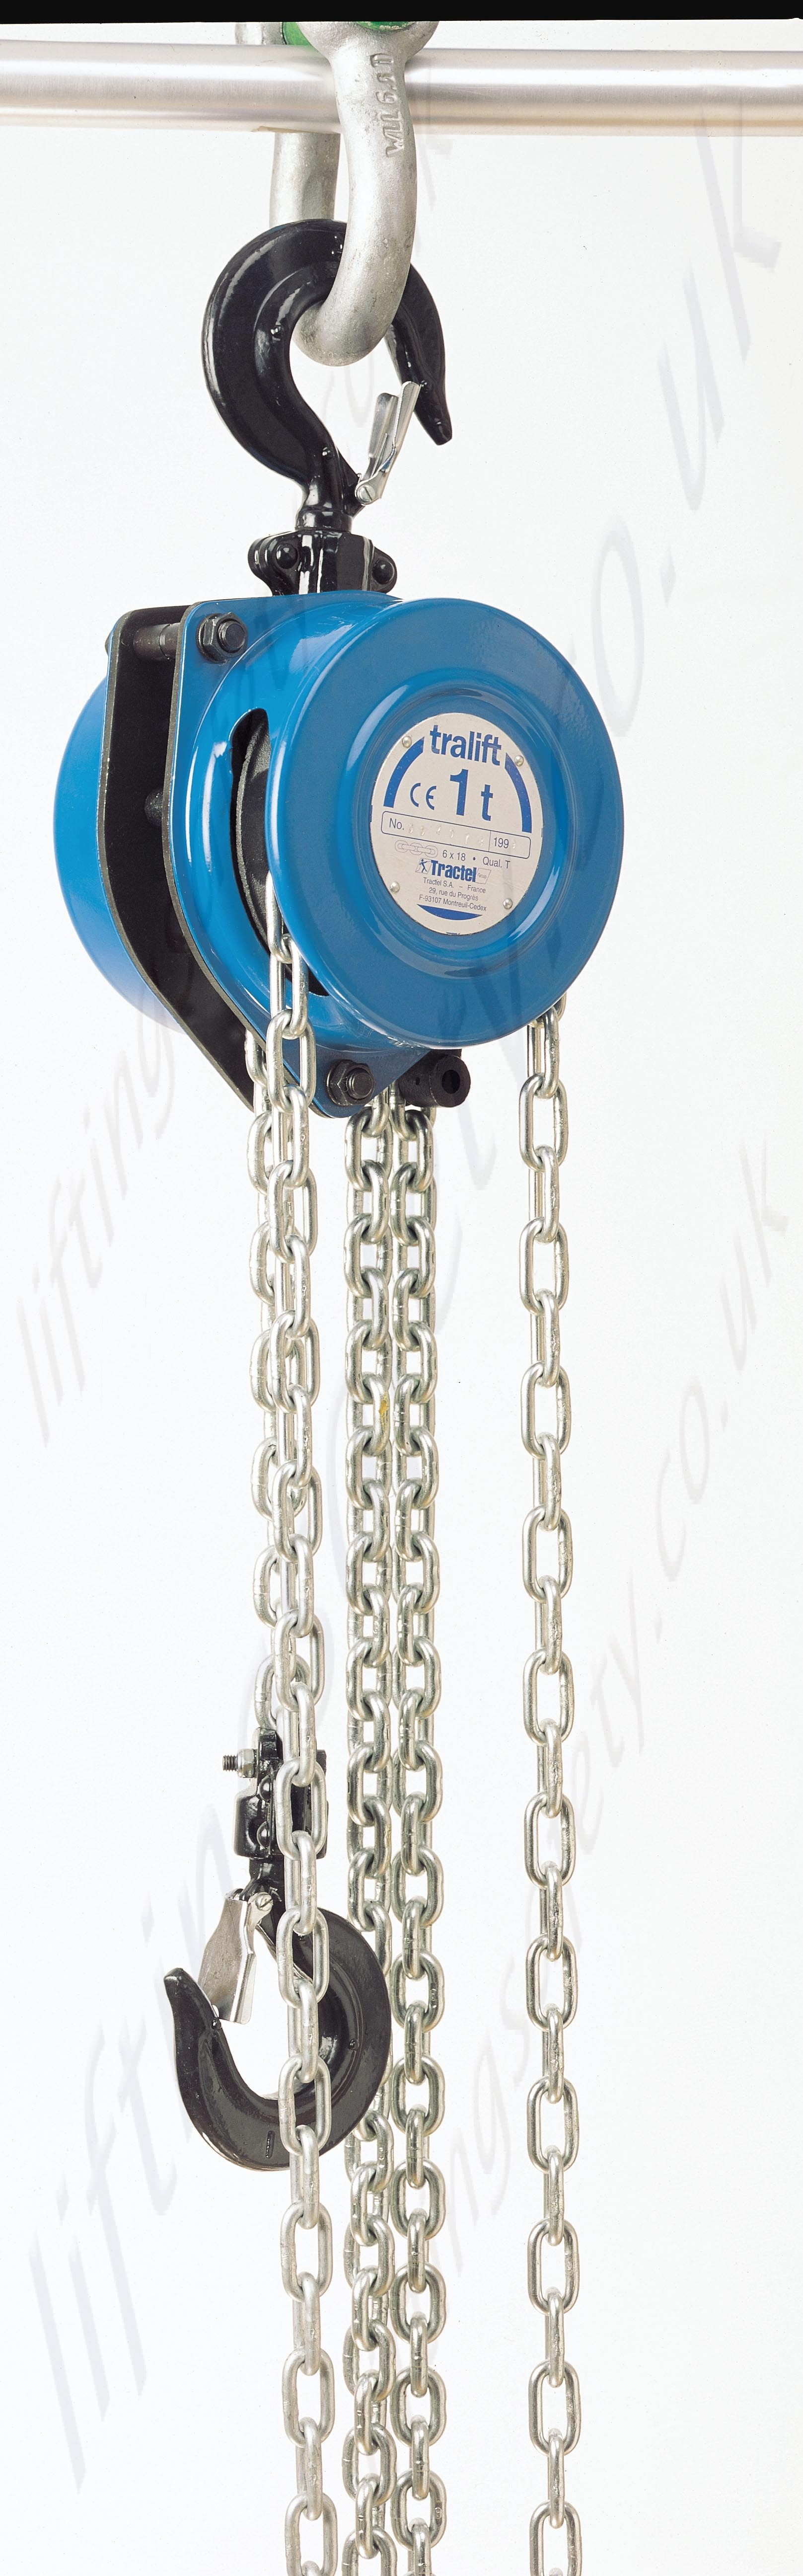 Mm Twist Swivel Anchor Chain Connector Stainless Steel Marine Boat P moreover Ie New Clx Chain Hoist Crane also Tractel Tralift Chain Hoist besides Rigidbag Grande together with Webansicht Normal Wz. on hand chain hoist